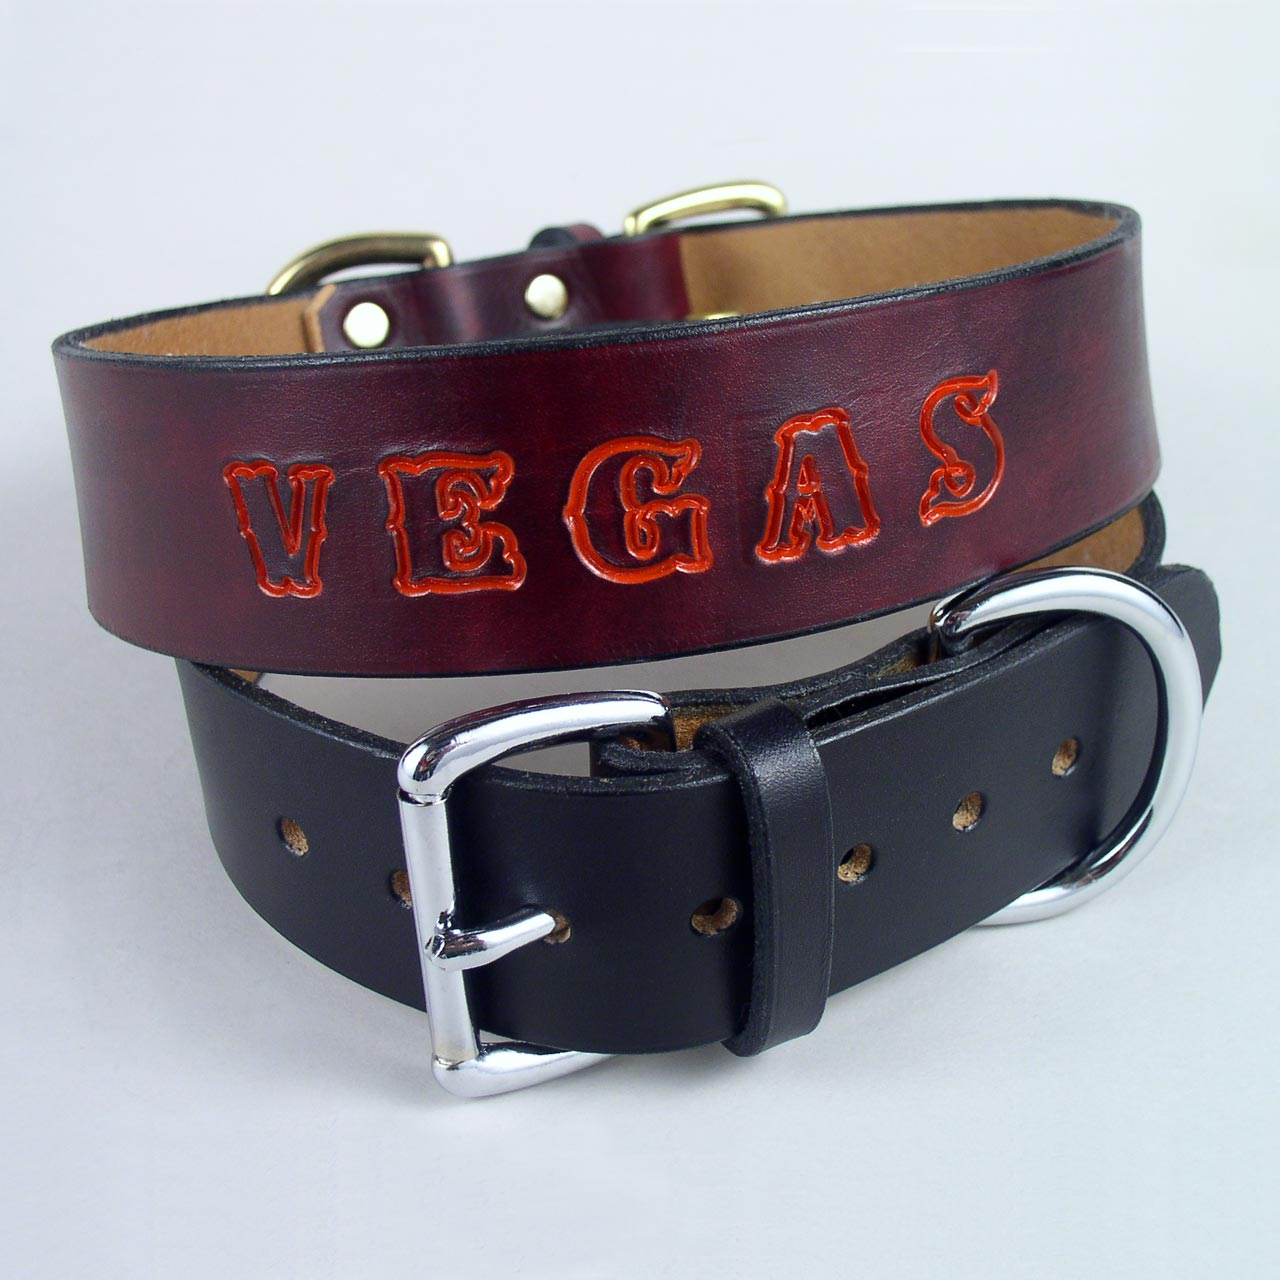 personalized dog collar gift idea.jpg